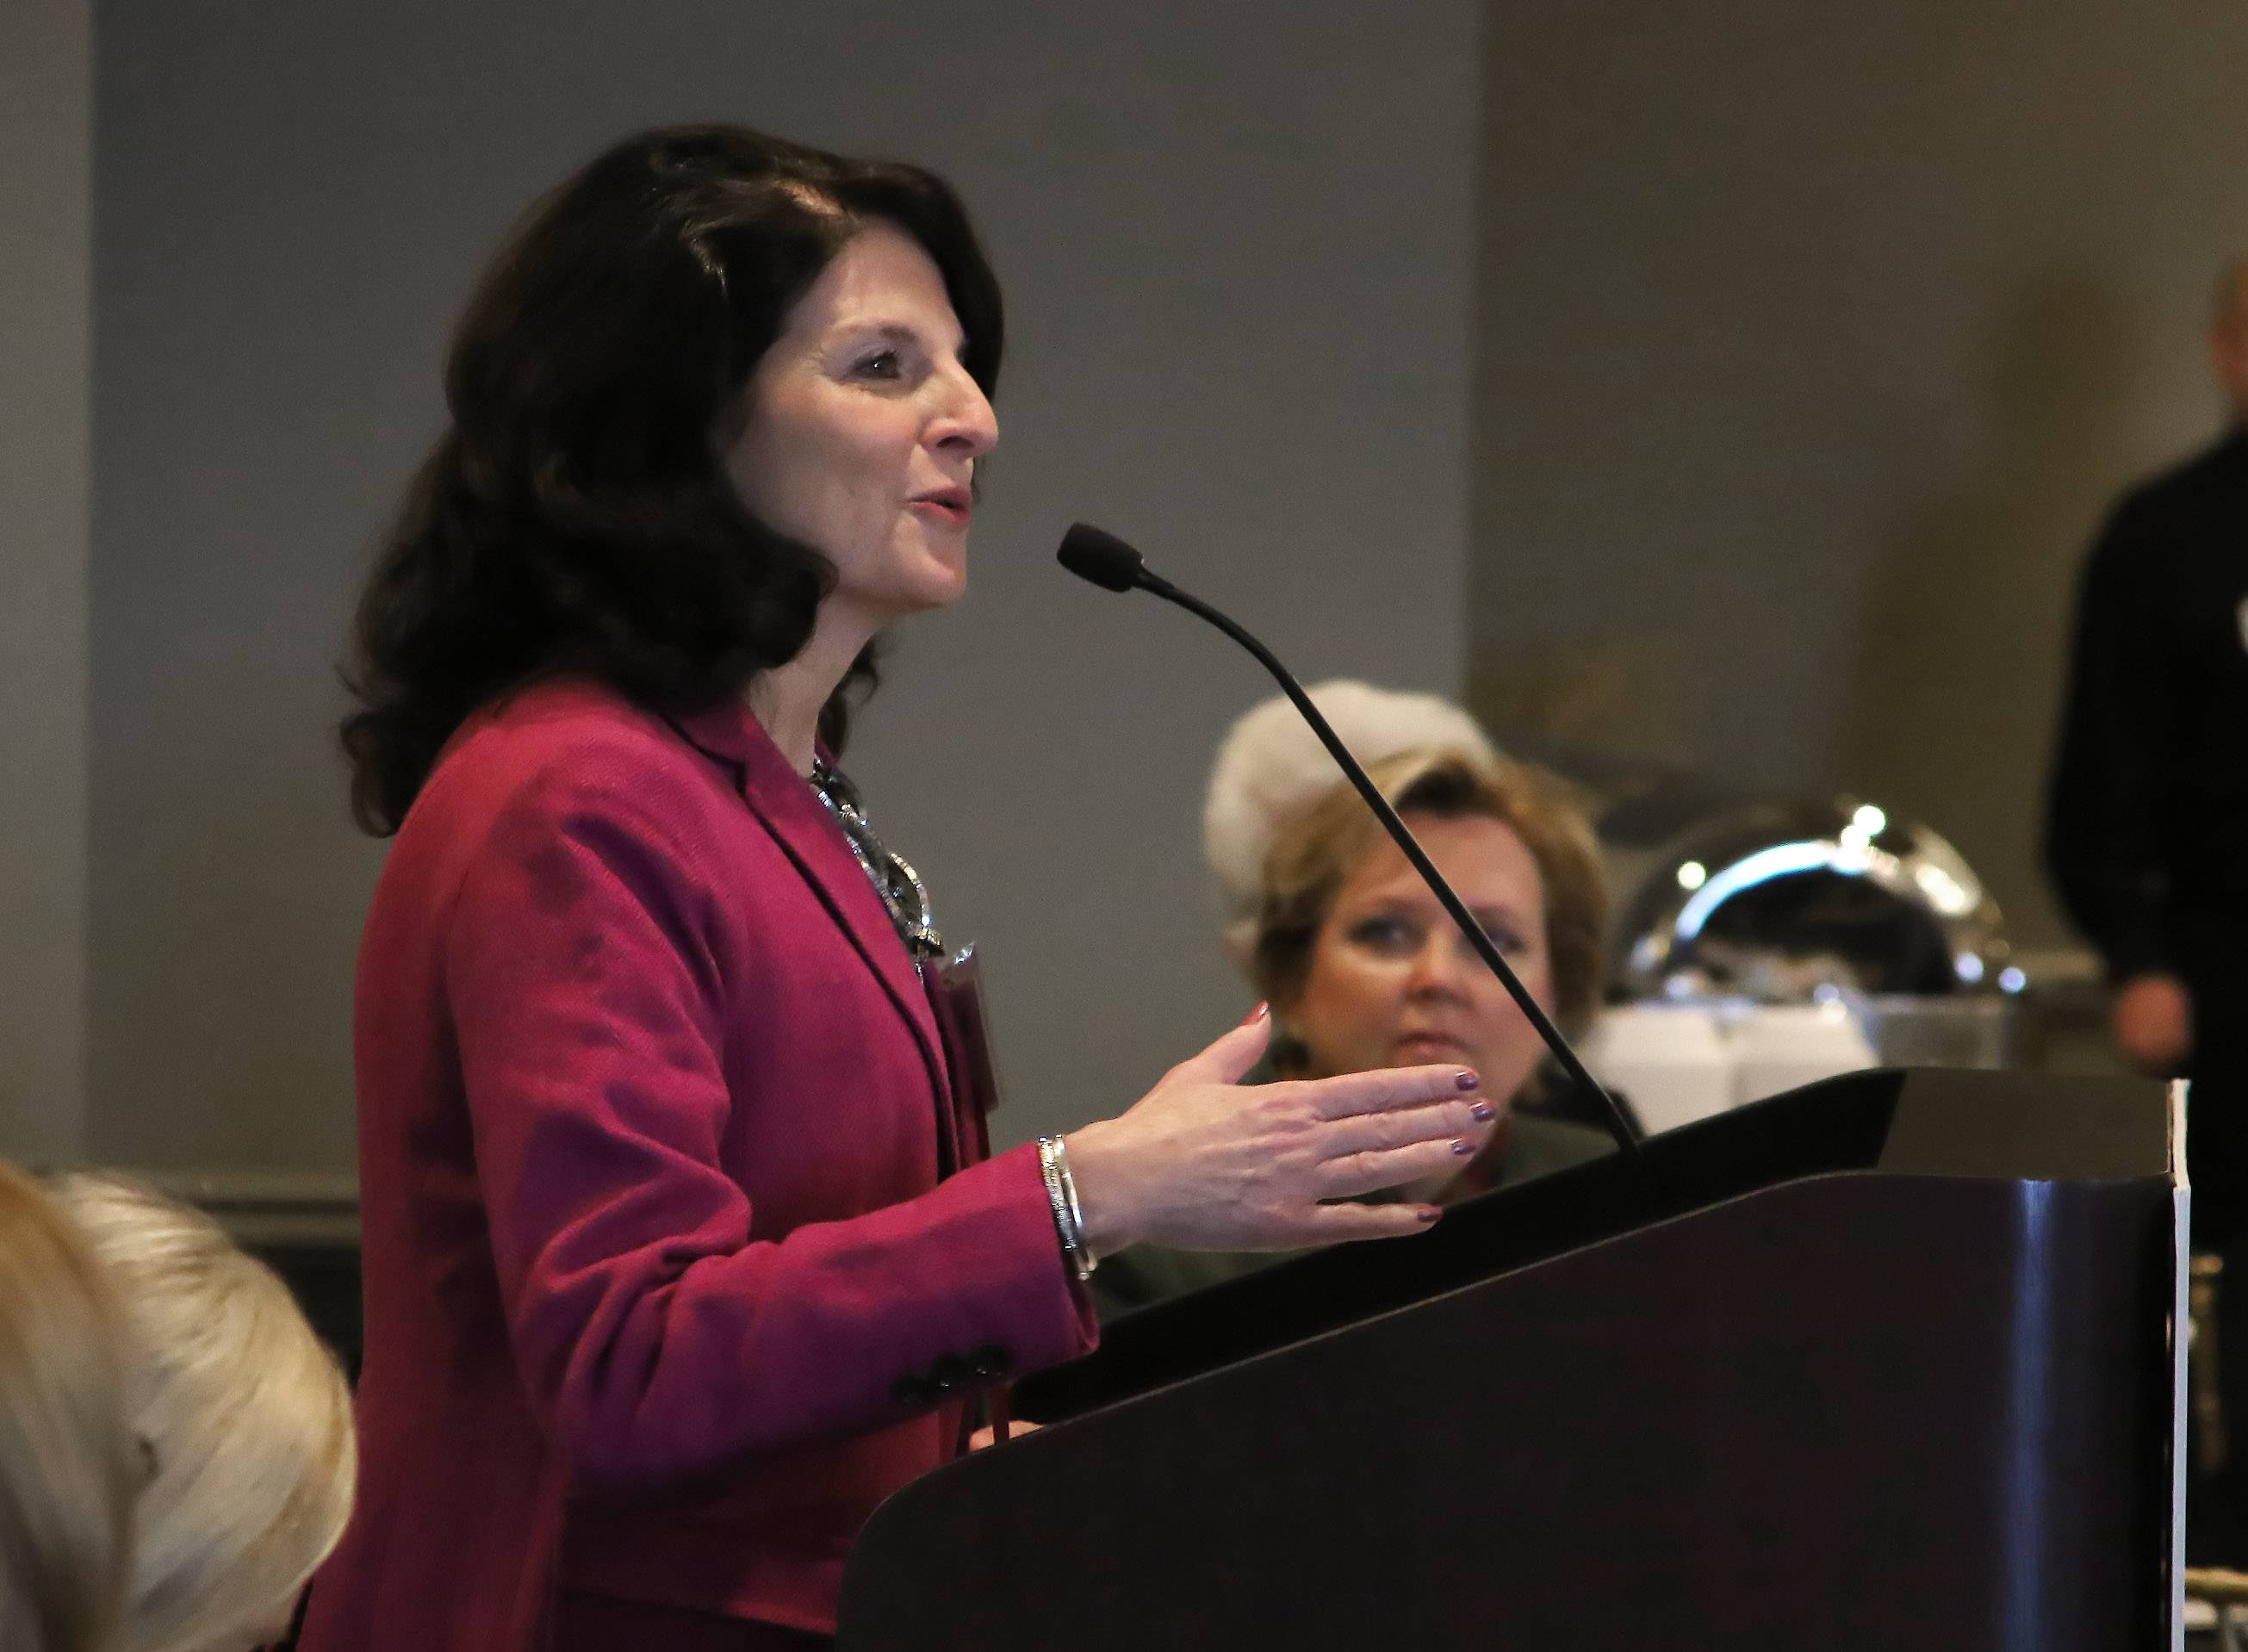 Barrington Village President Karen Darch discusses the latest developments in the village during the Barrington Area Chamber of Commerce Economic Summit at the White House in Barrington on Wednesday.